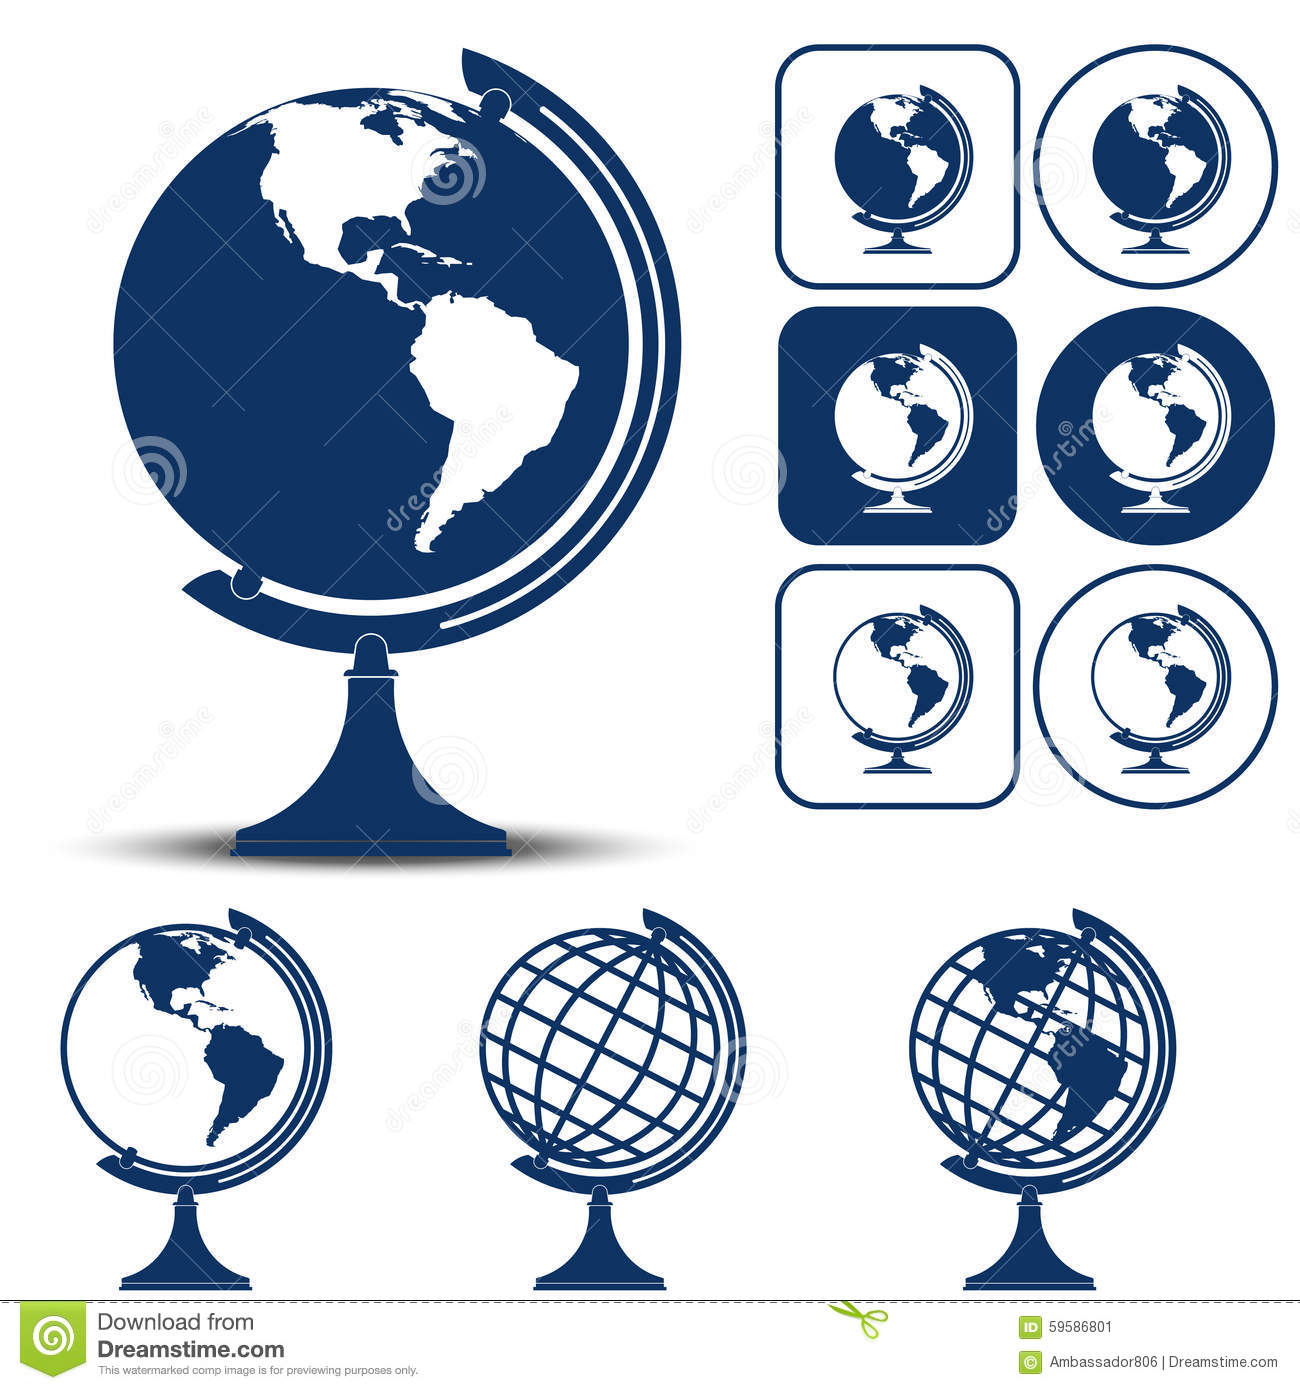 Earth Planet Globe Vector Illustration Stock Vector ...